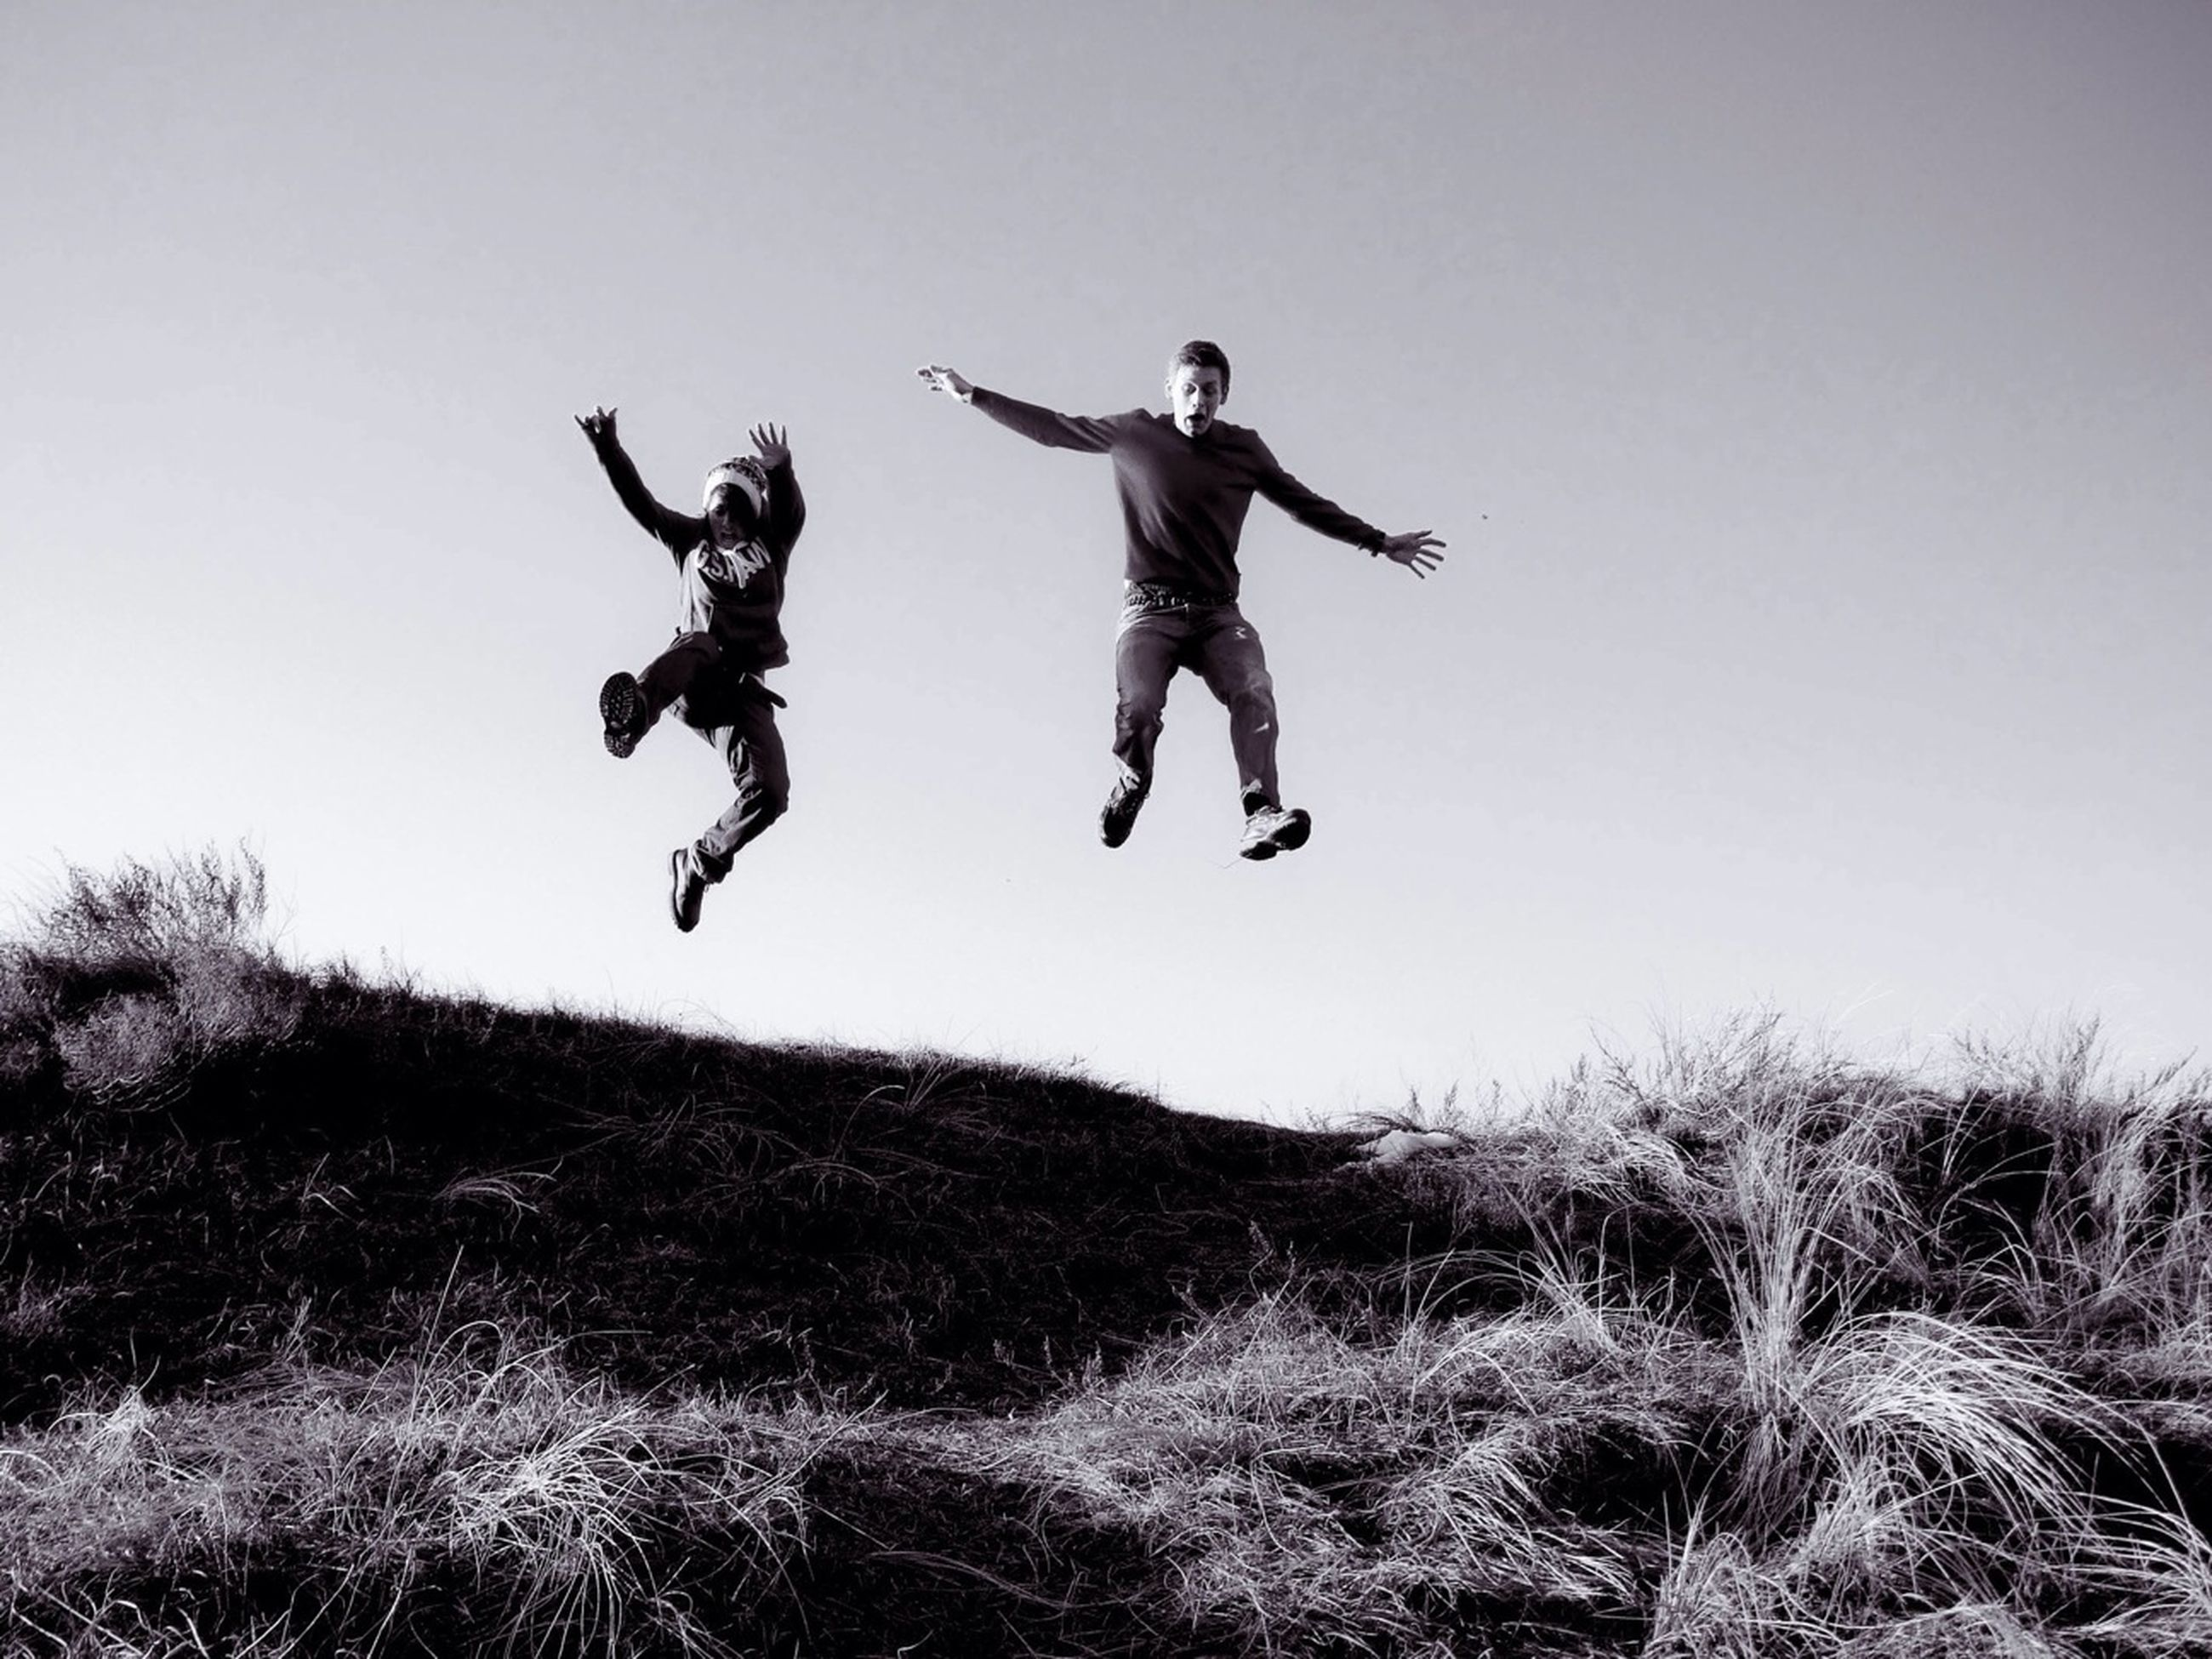 full length, mid-air, lifestyles, jumping, leisure activity, fun, enjoyment, men, freedom, sport, clear sky, arms outstretched, vitality, motion, childhood, low angle view, carefree, casual clothing